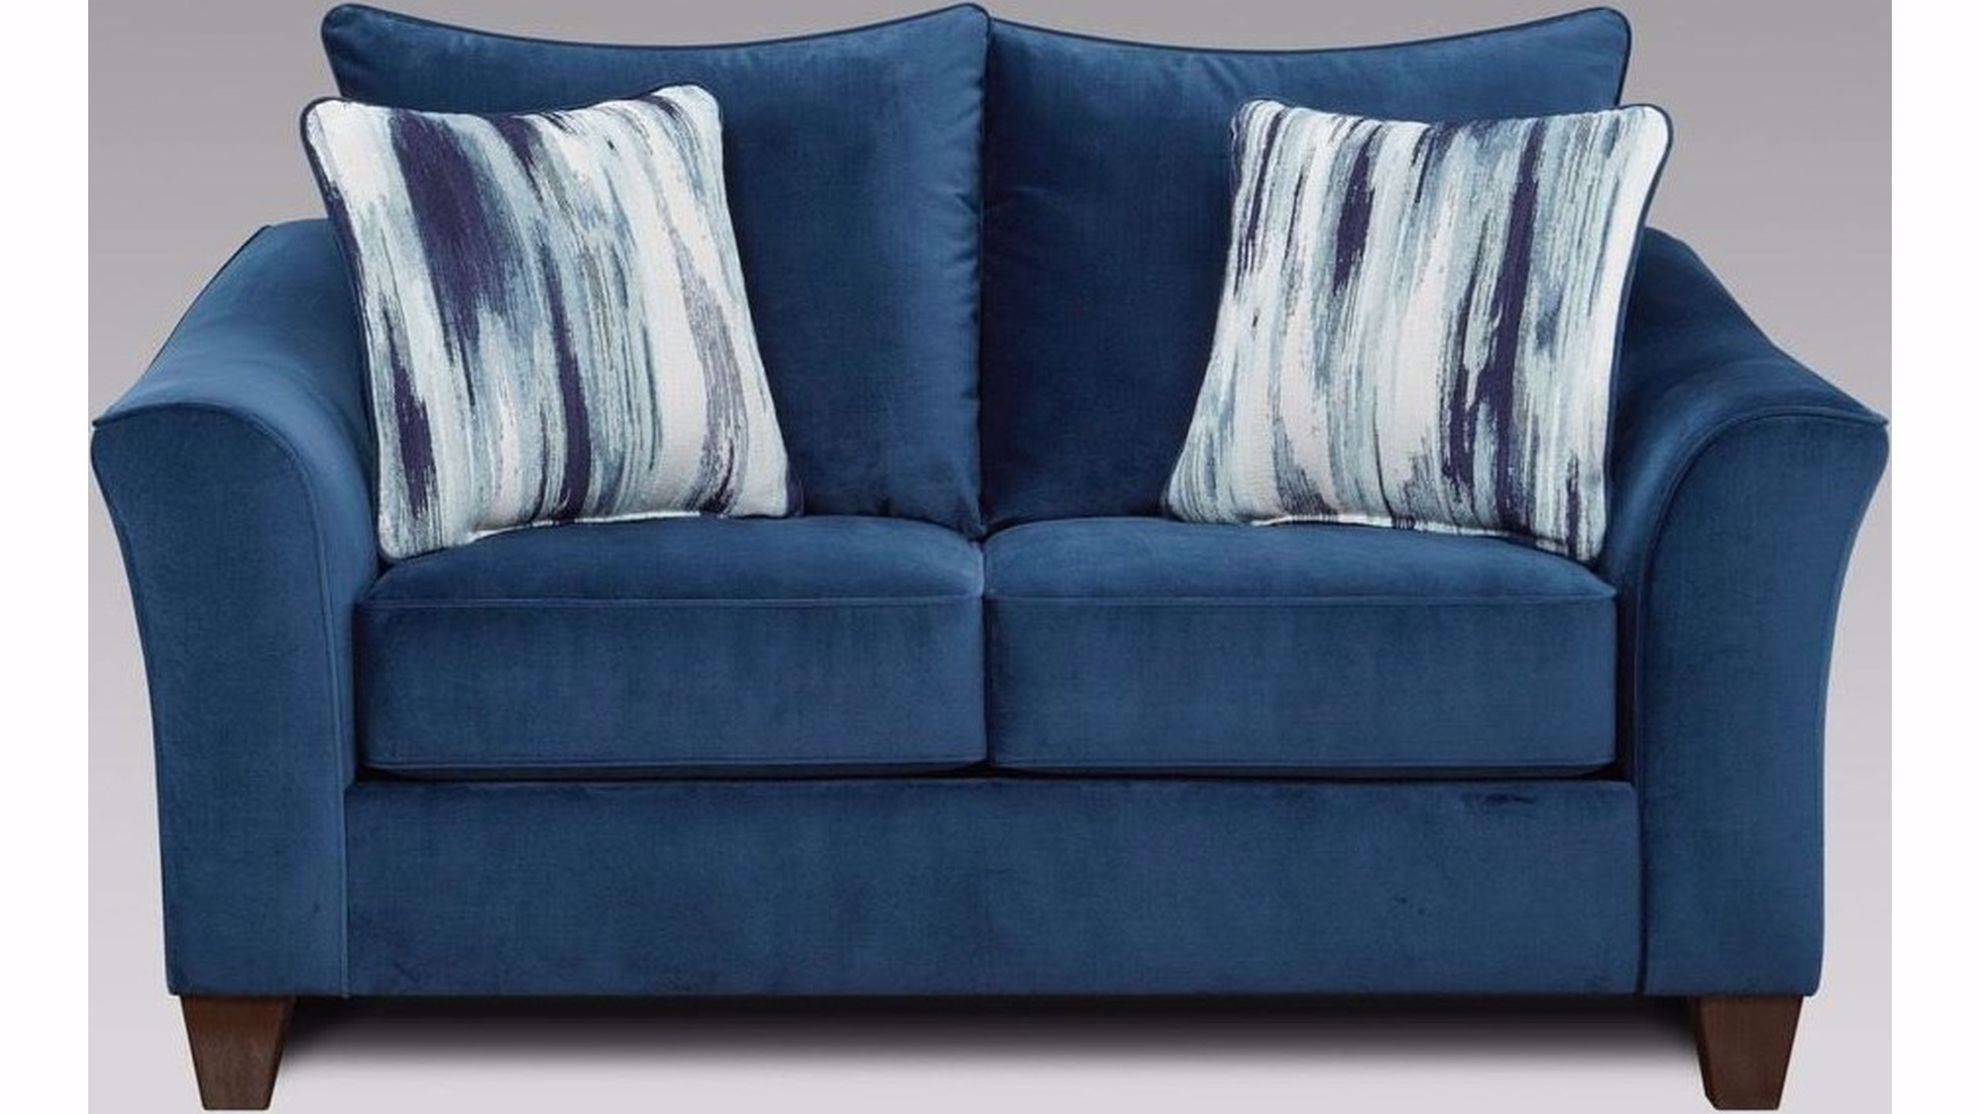 Picture of Velour Navy Loveseat